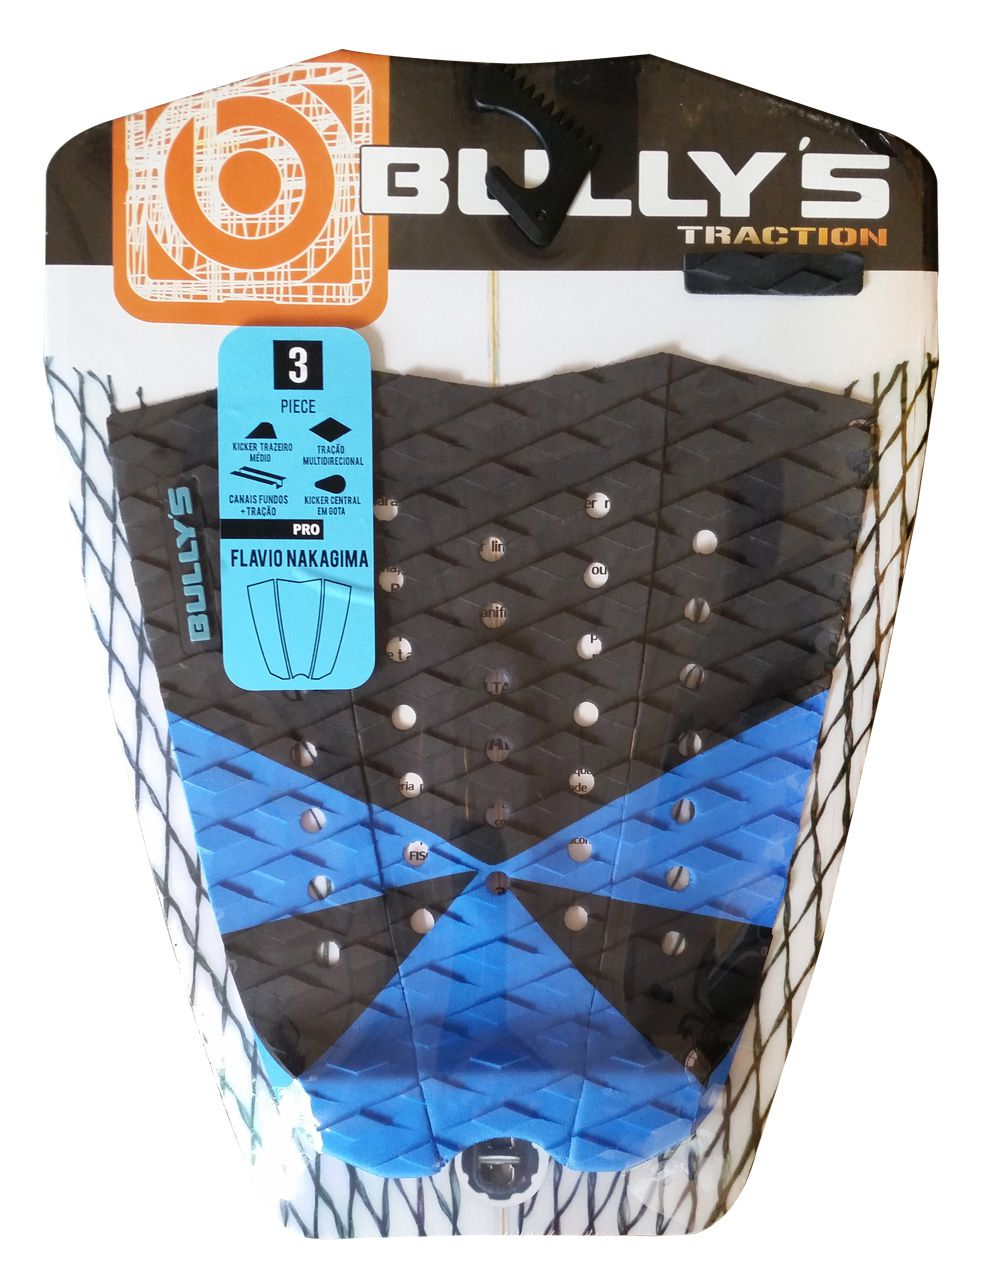 Deck Bully's  Traction Flavio Nakagima